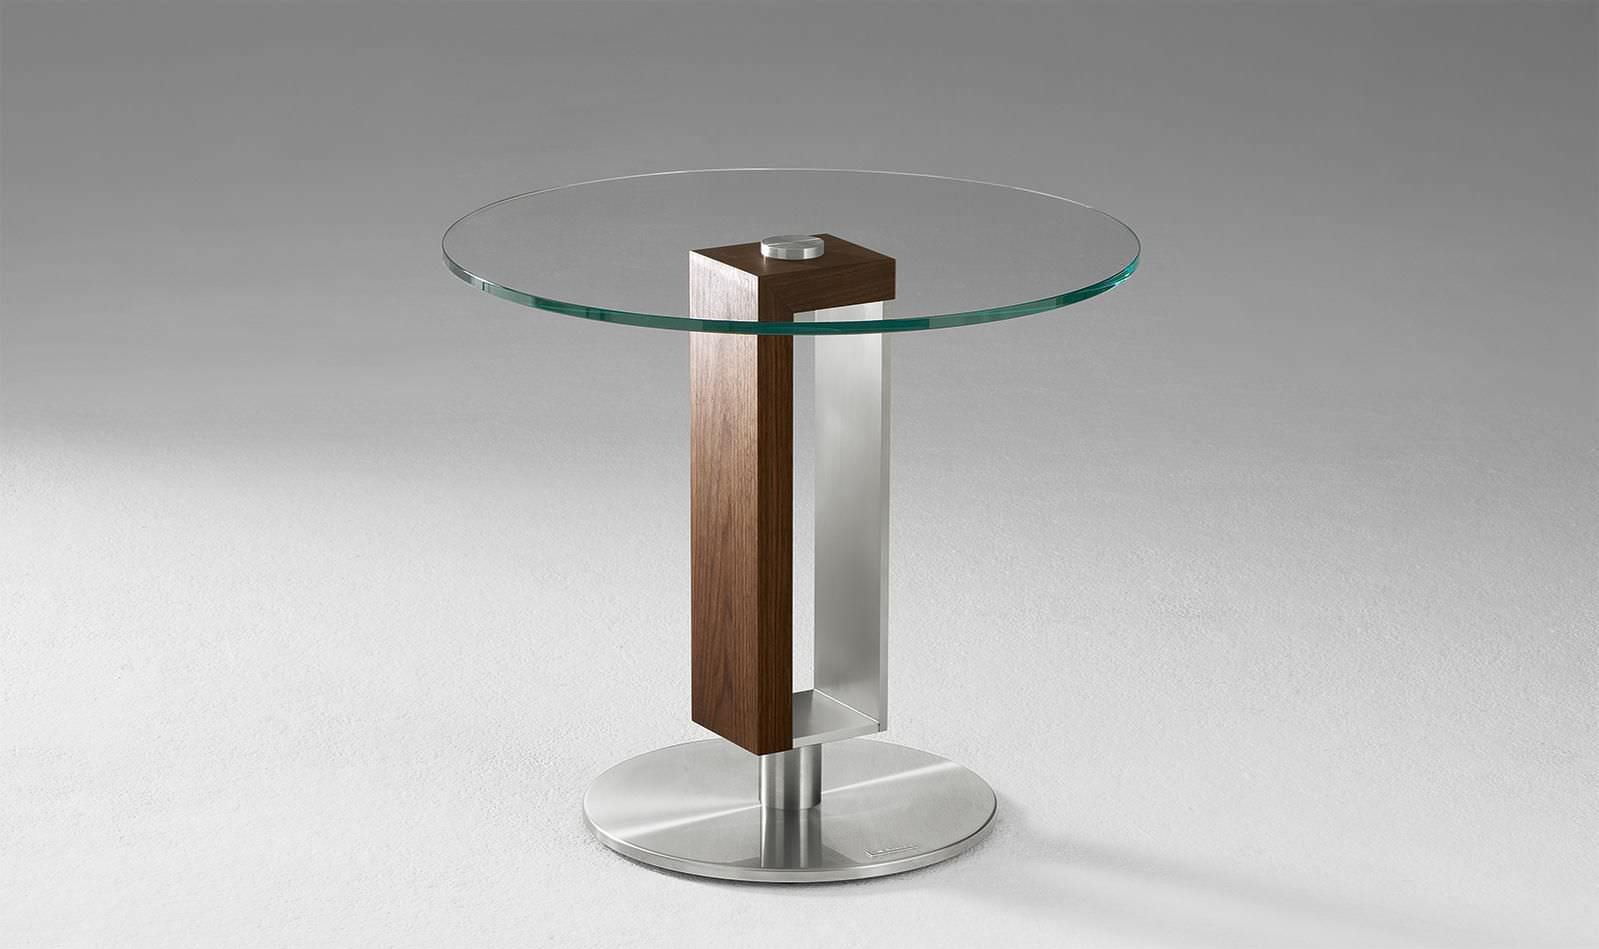 Contemporary Side Table / Glass / Round 4000 Alfons Venjakob GmbH U0026 Co.